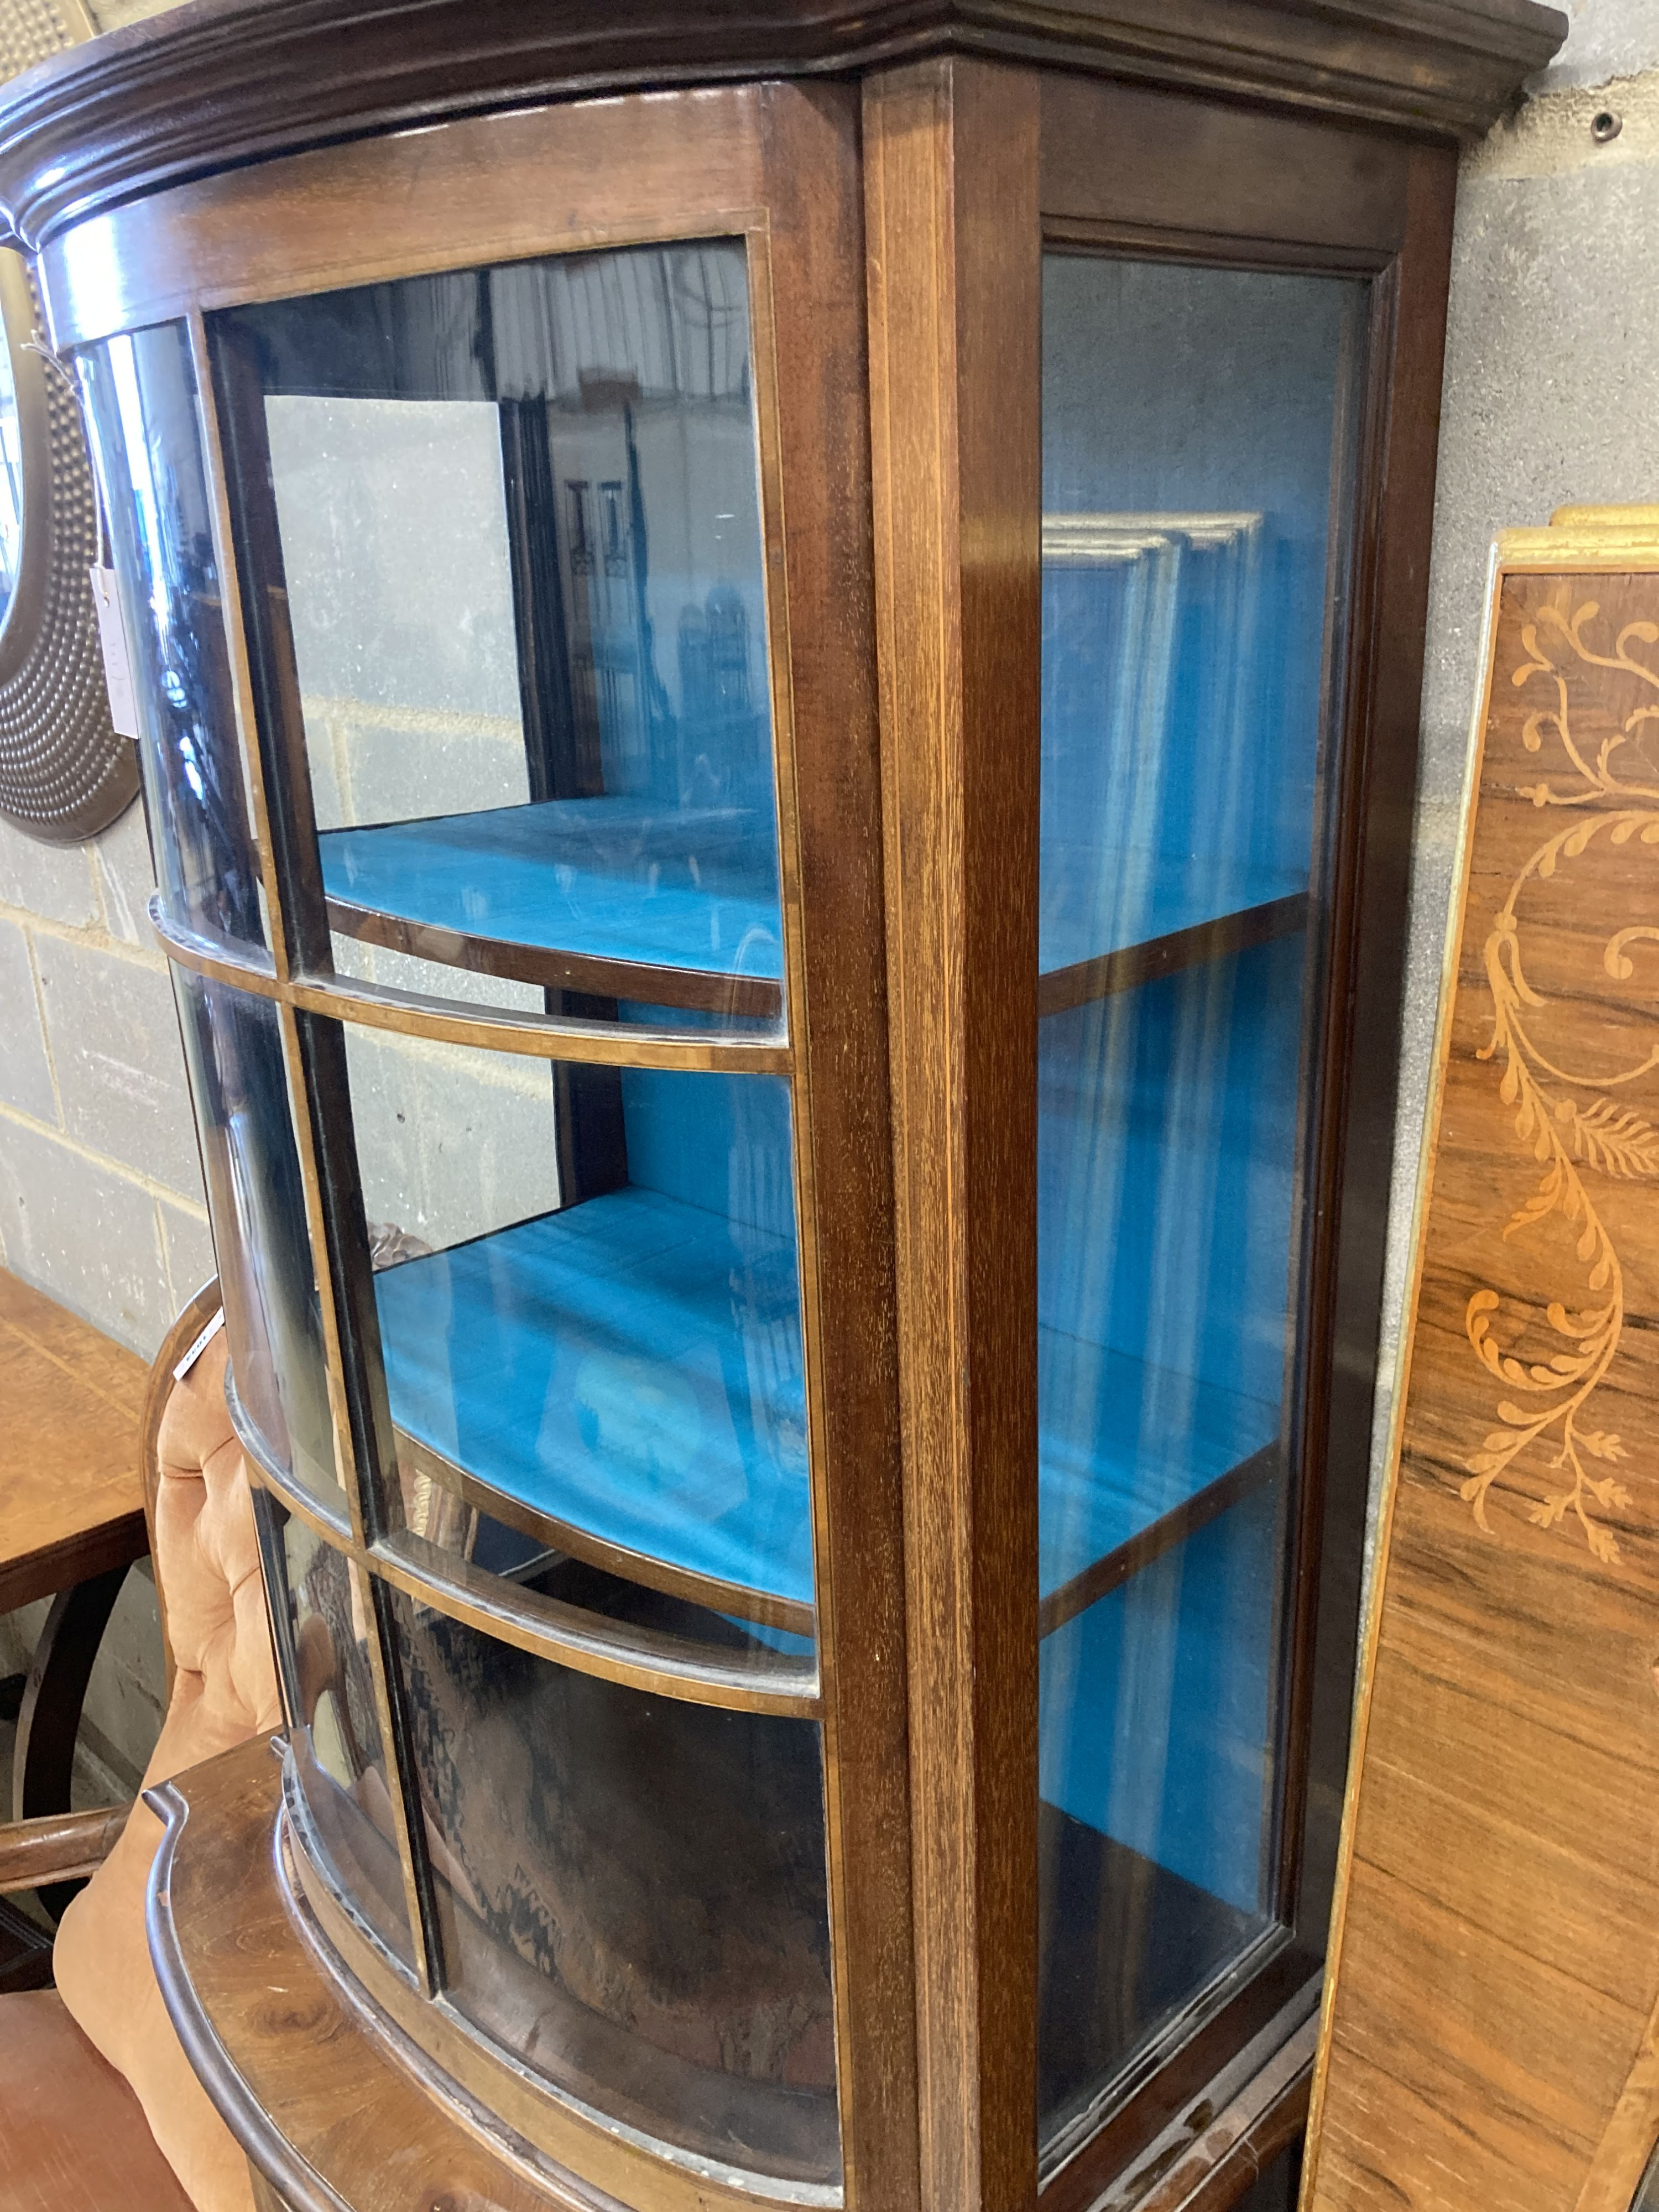 An Edwardian mahogany bowfront narrow display cabinet, width 60cm, depth 36cm, height 164cm - Image 4 of 4